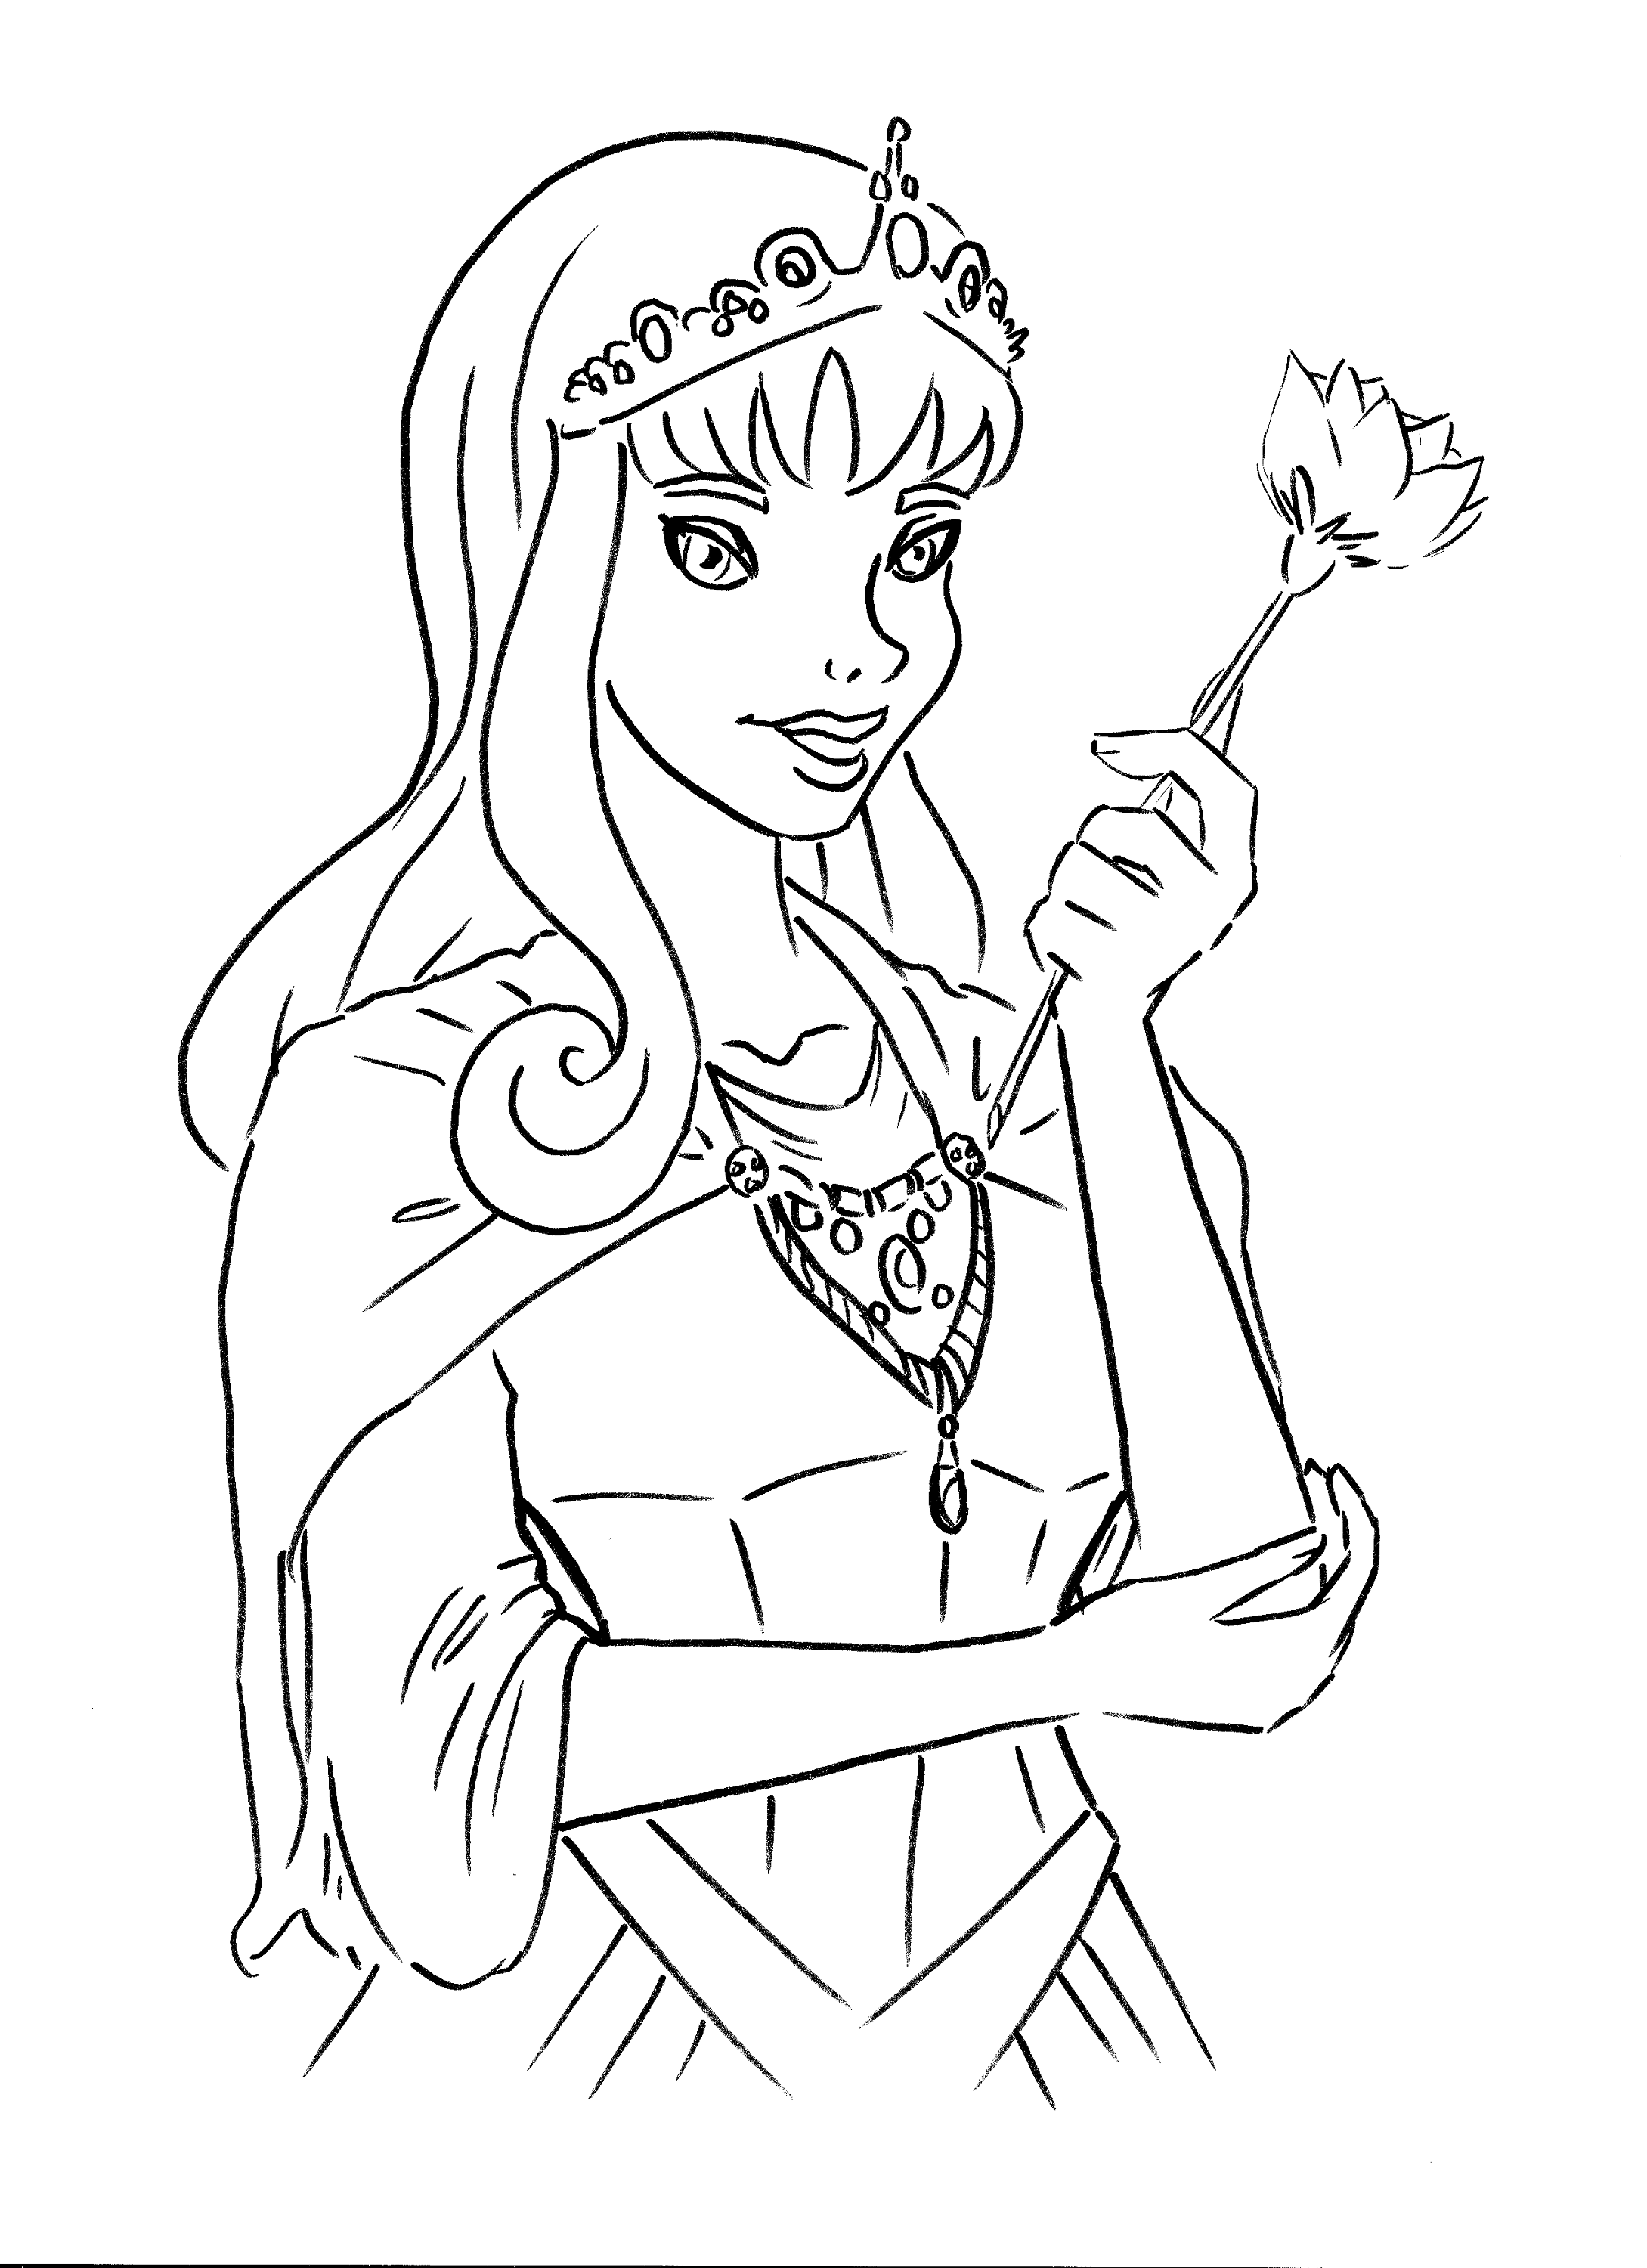 Princess coloring book pages printable - Princess Coloring Book Pages Printable Activity Shelter